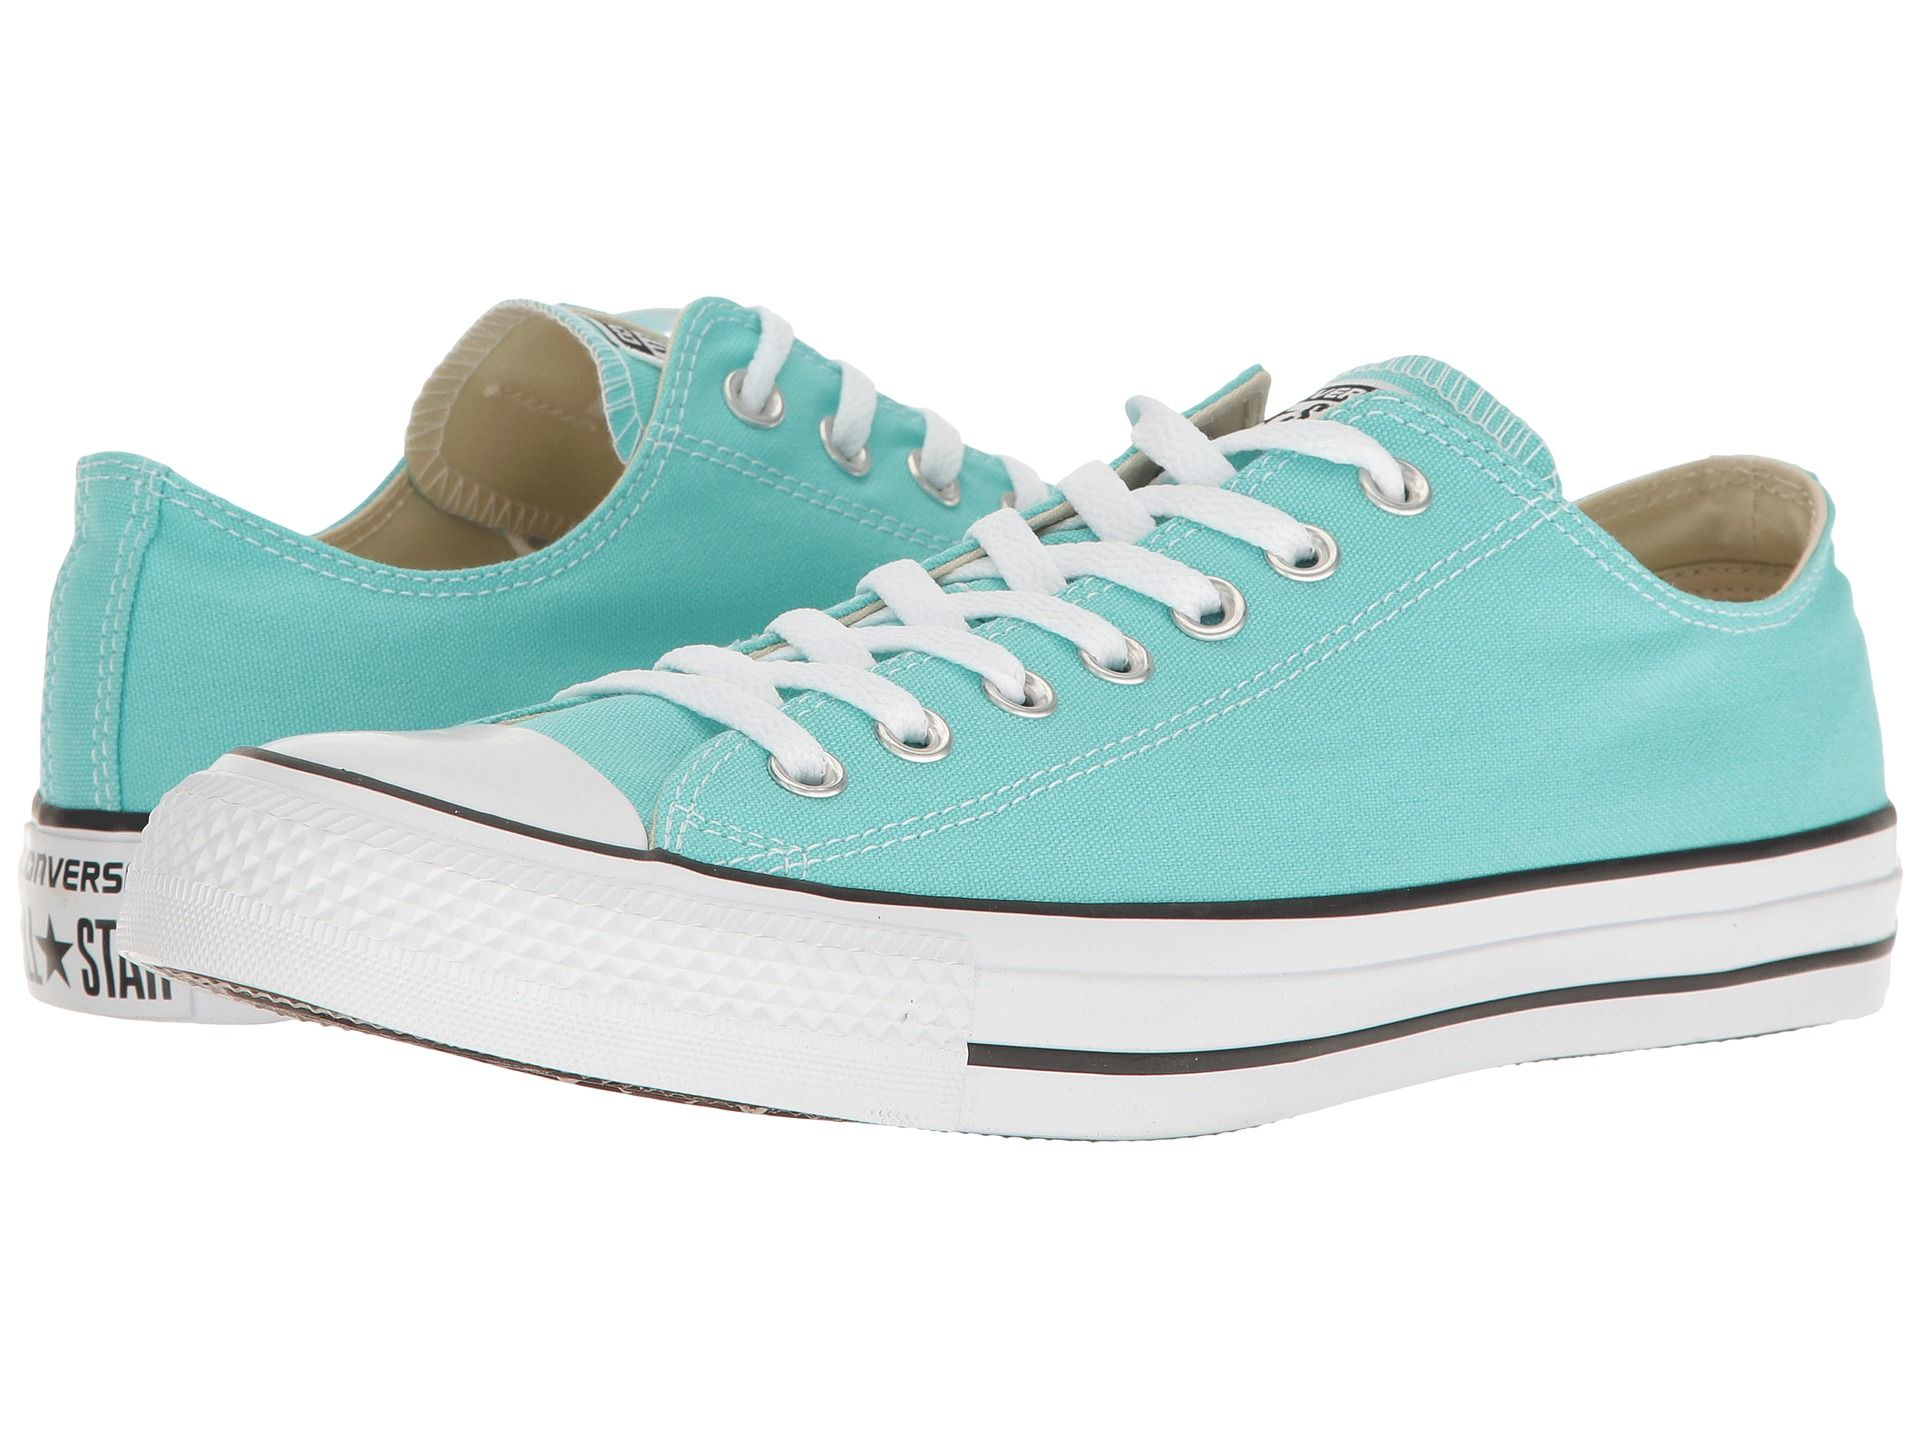 8aa01fa43958 Turquoise Converse Chuck Taylor All Star OX